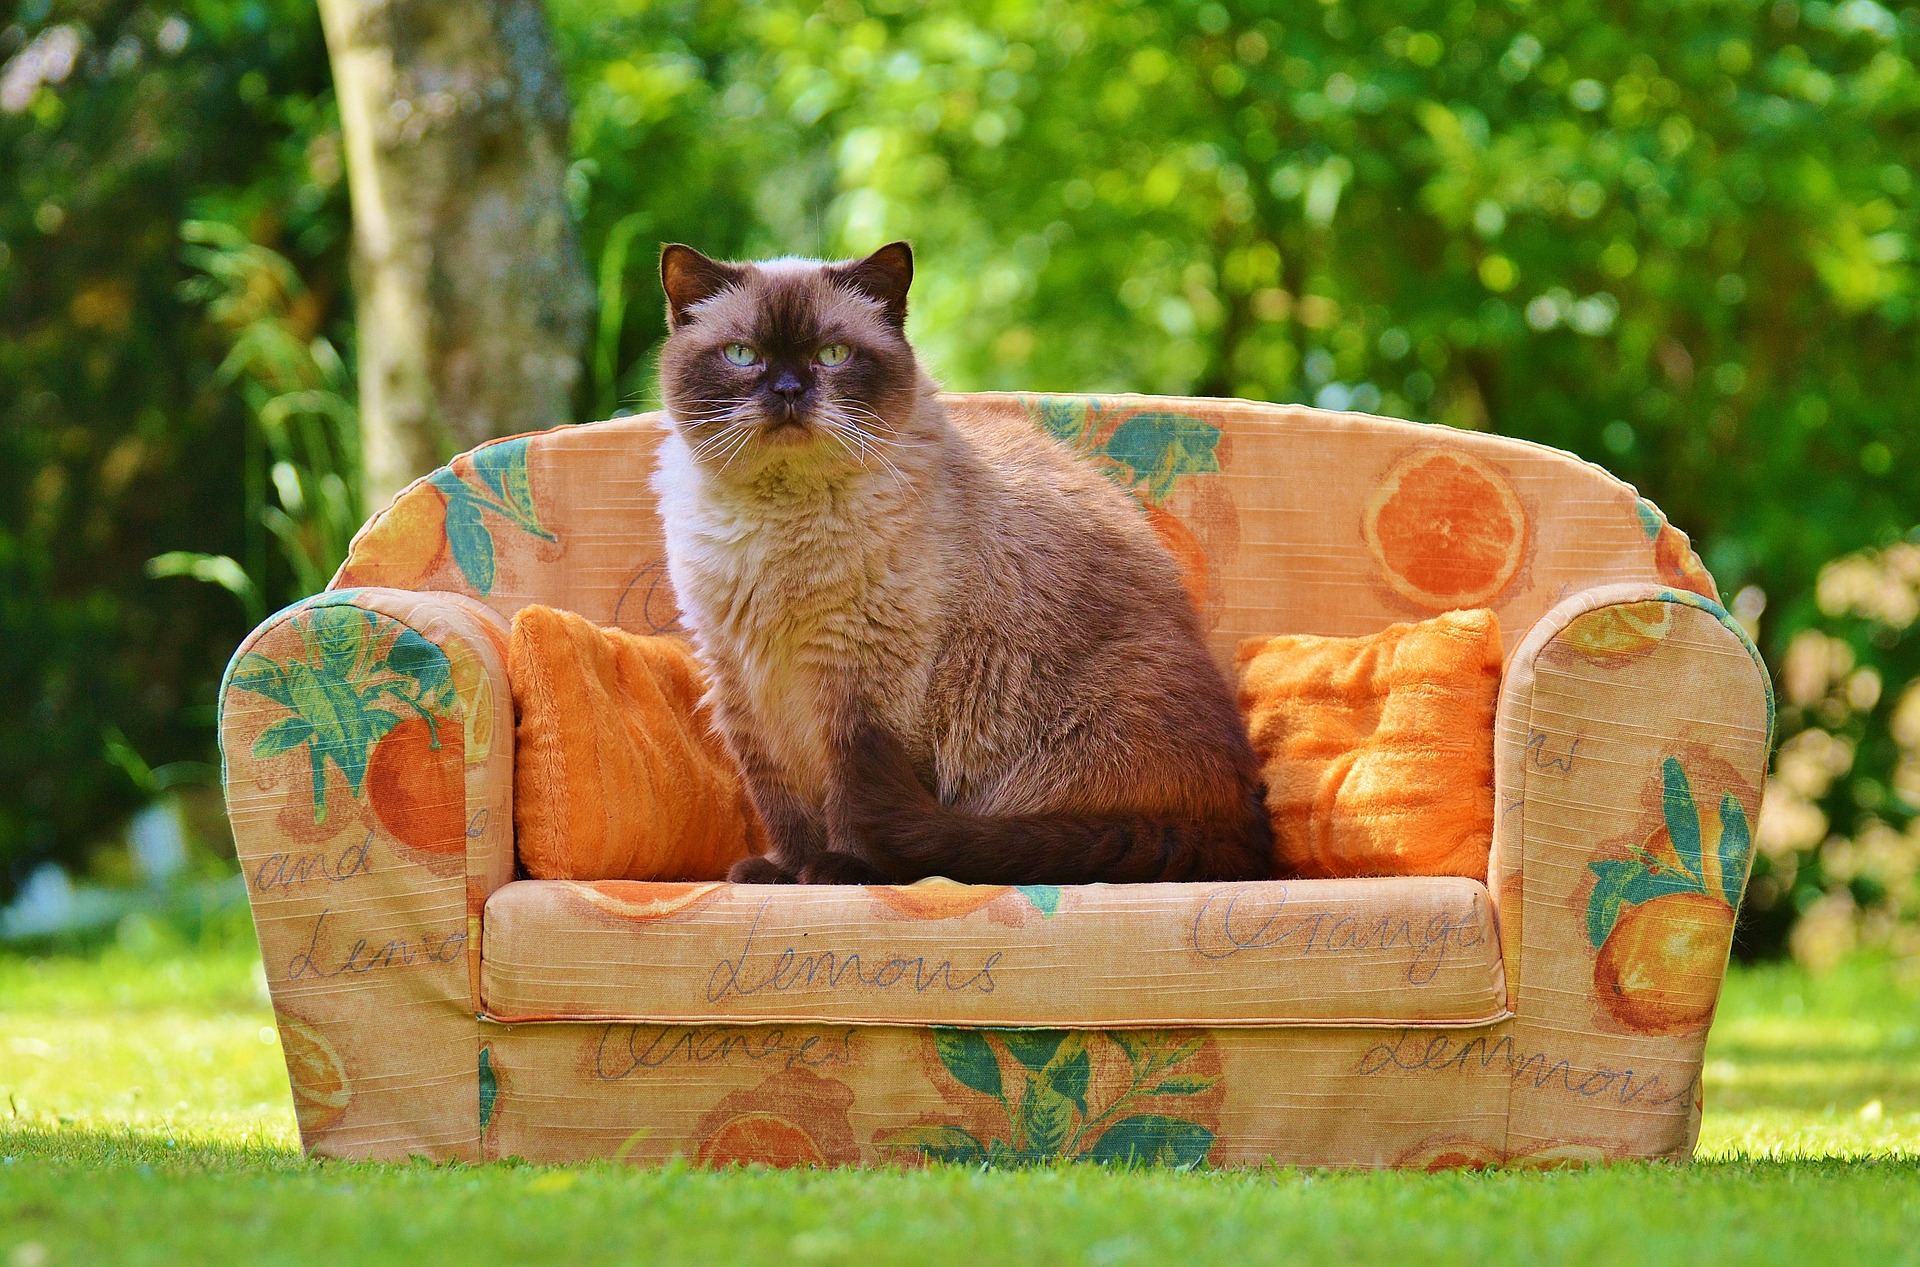 Best cat food for british shorthairs